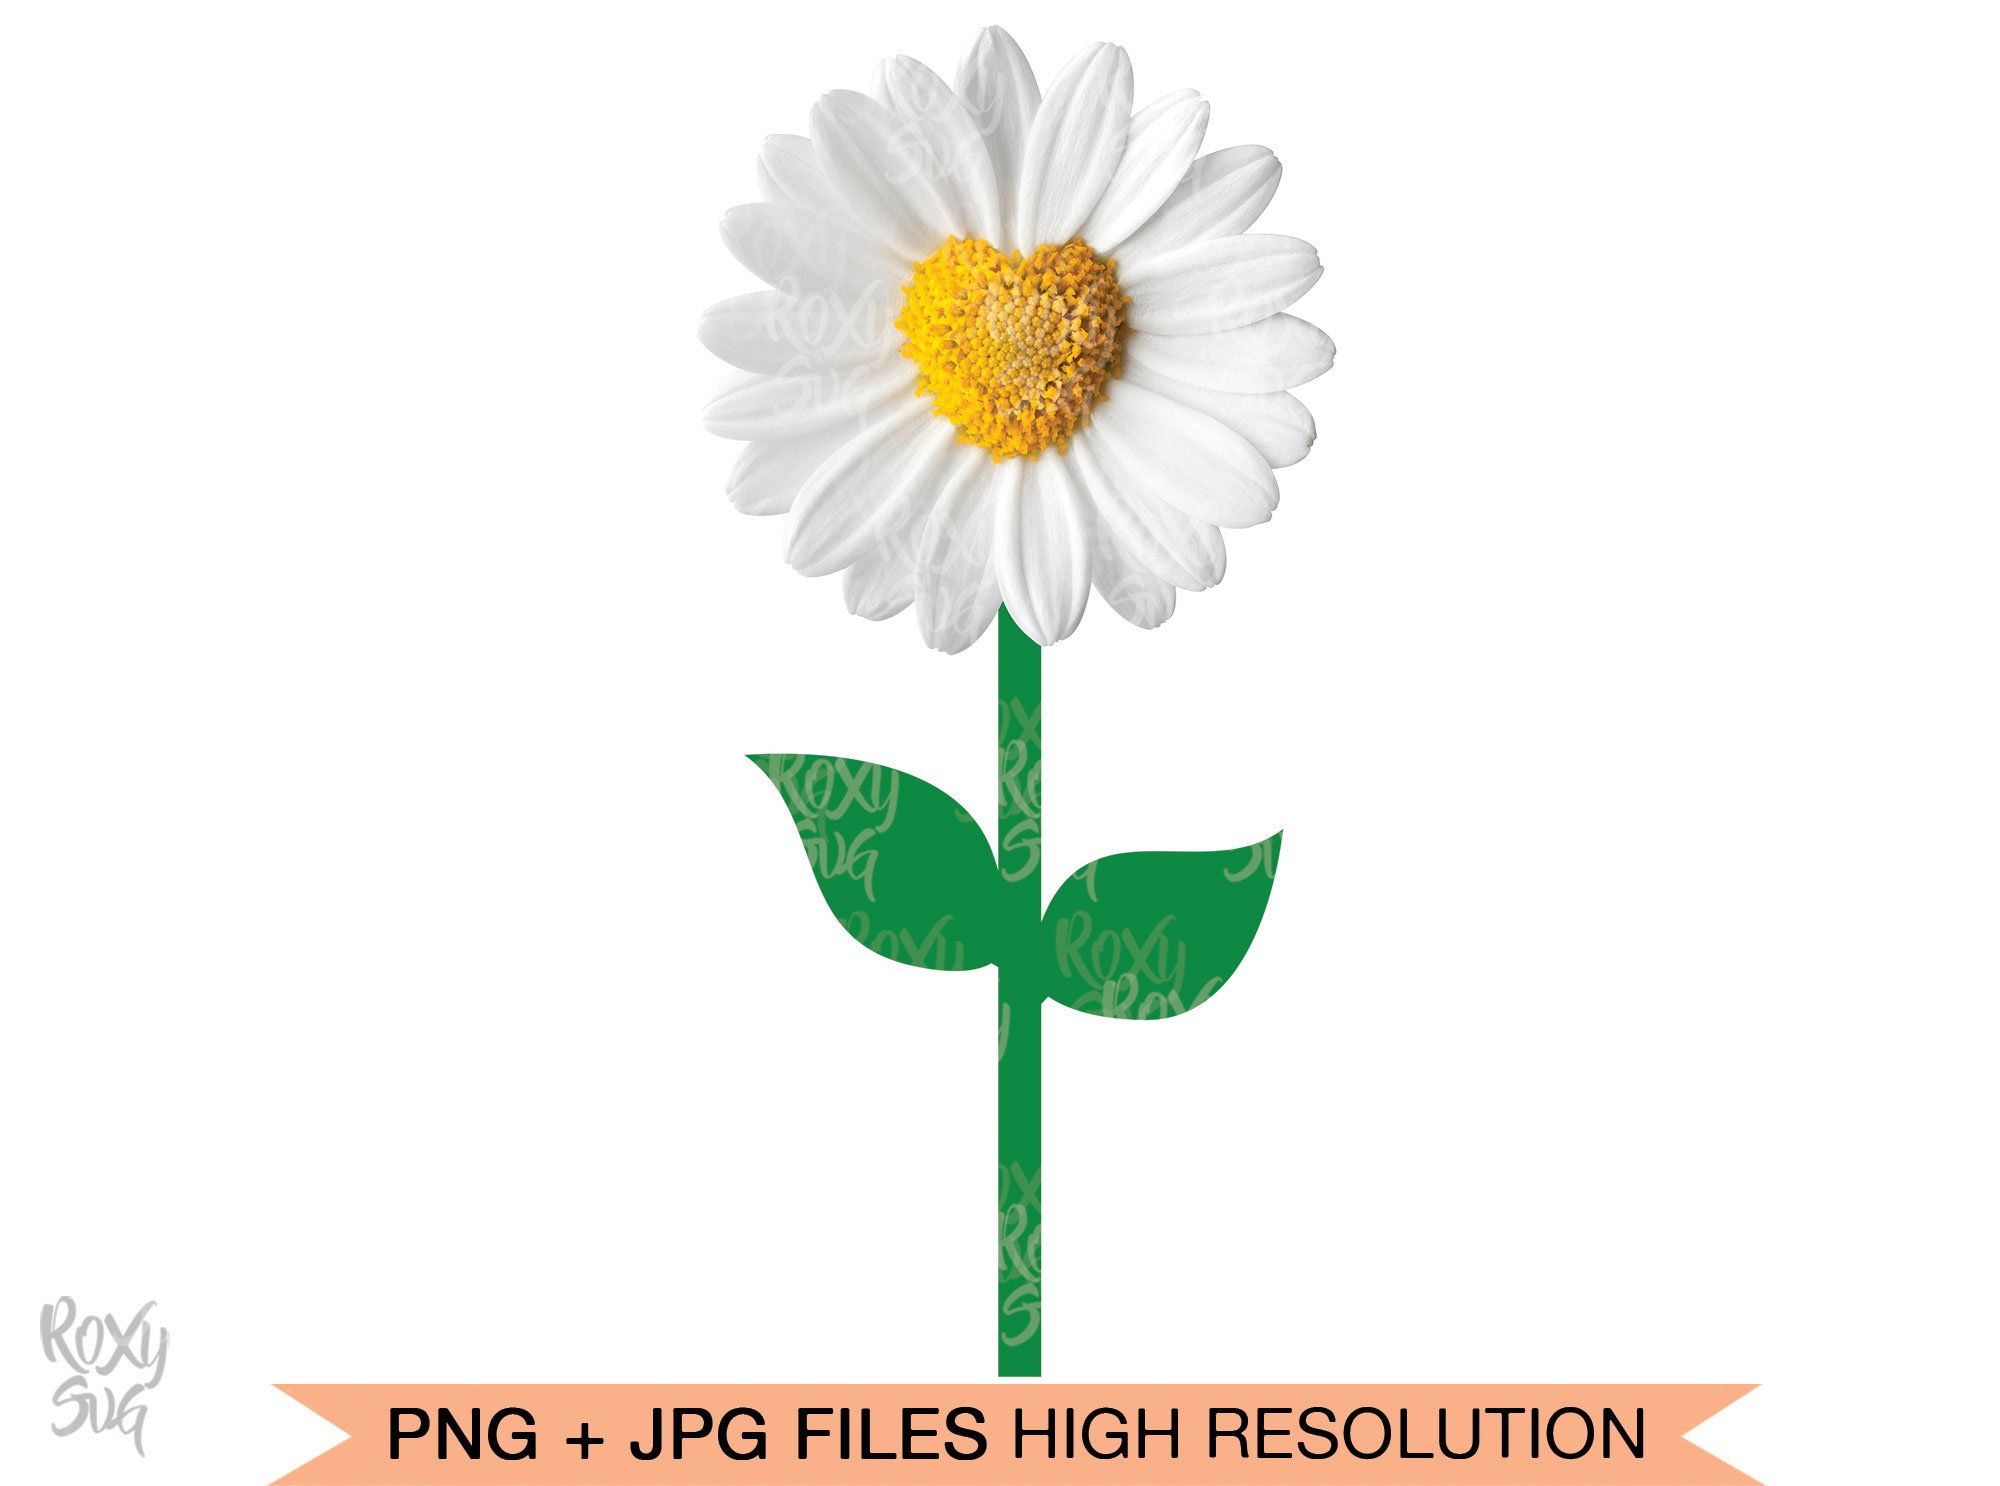 White Daisies Png Images Vector And Psd Files Free Download On Pngtree Flower Graphic Free Watercolor Flowers Flower Drawing